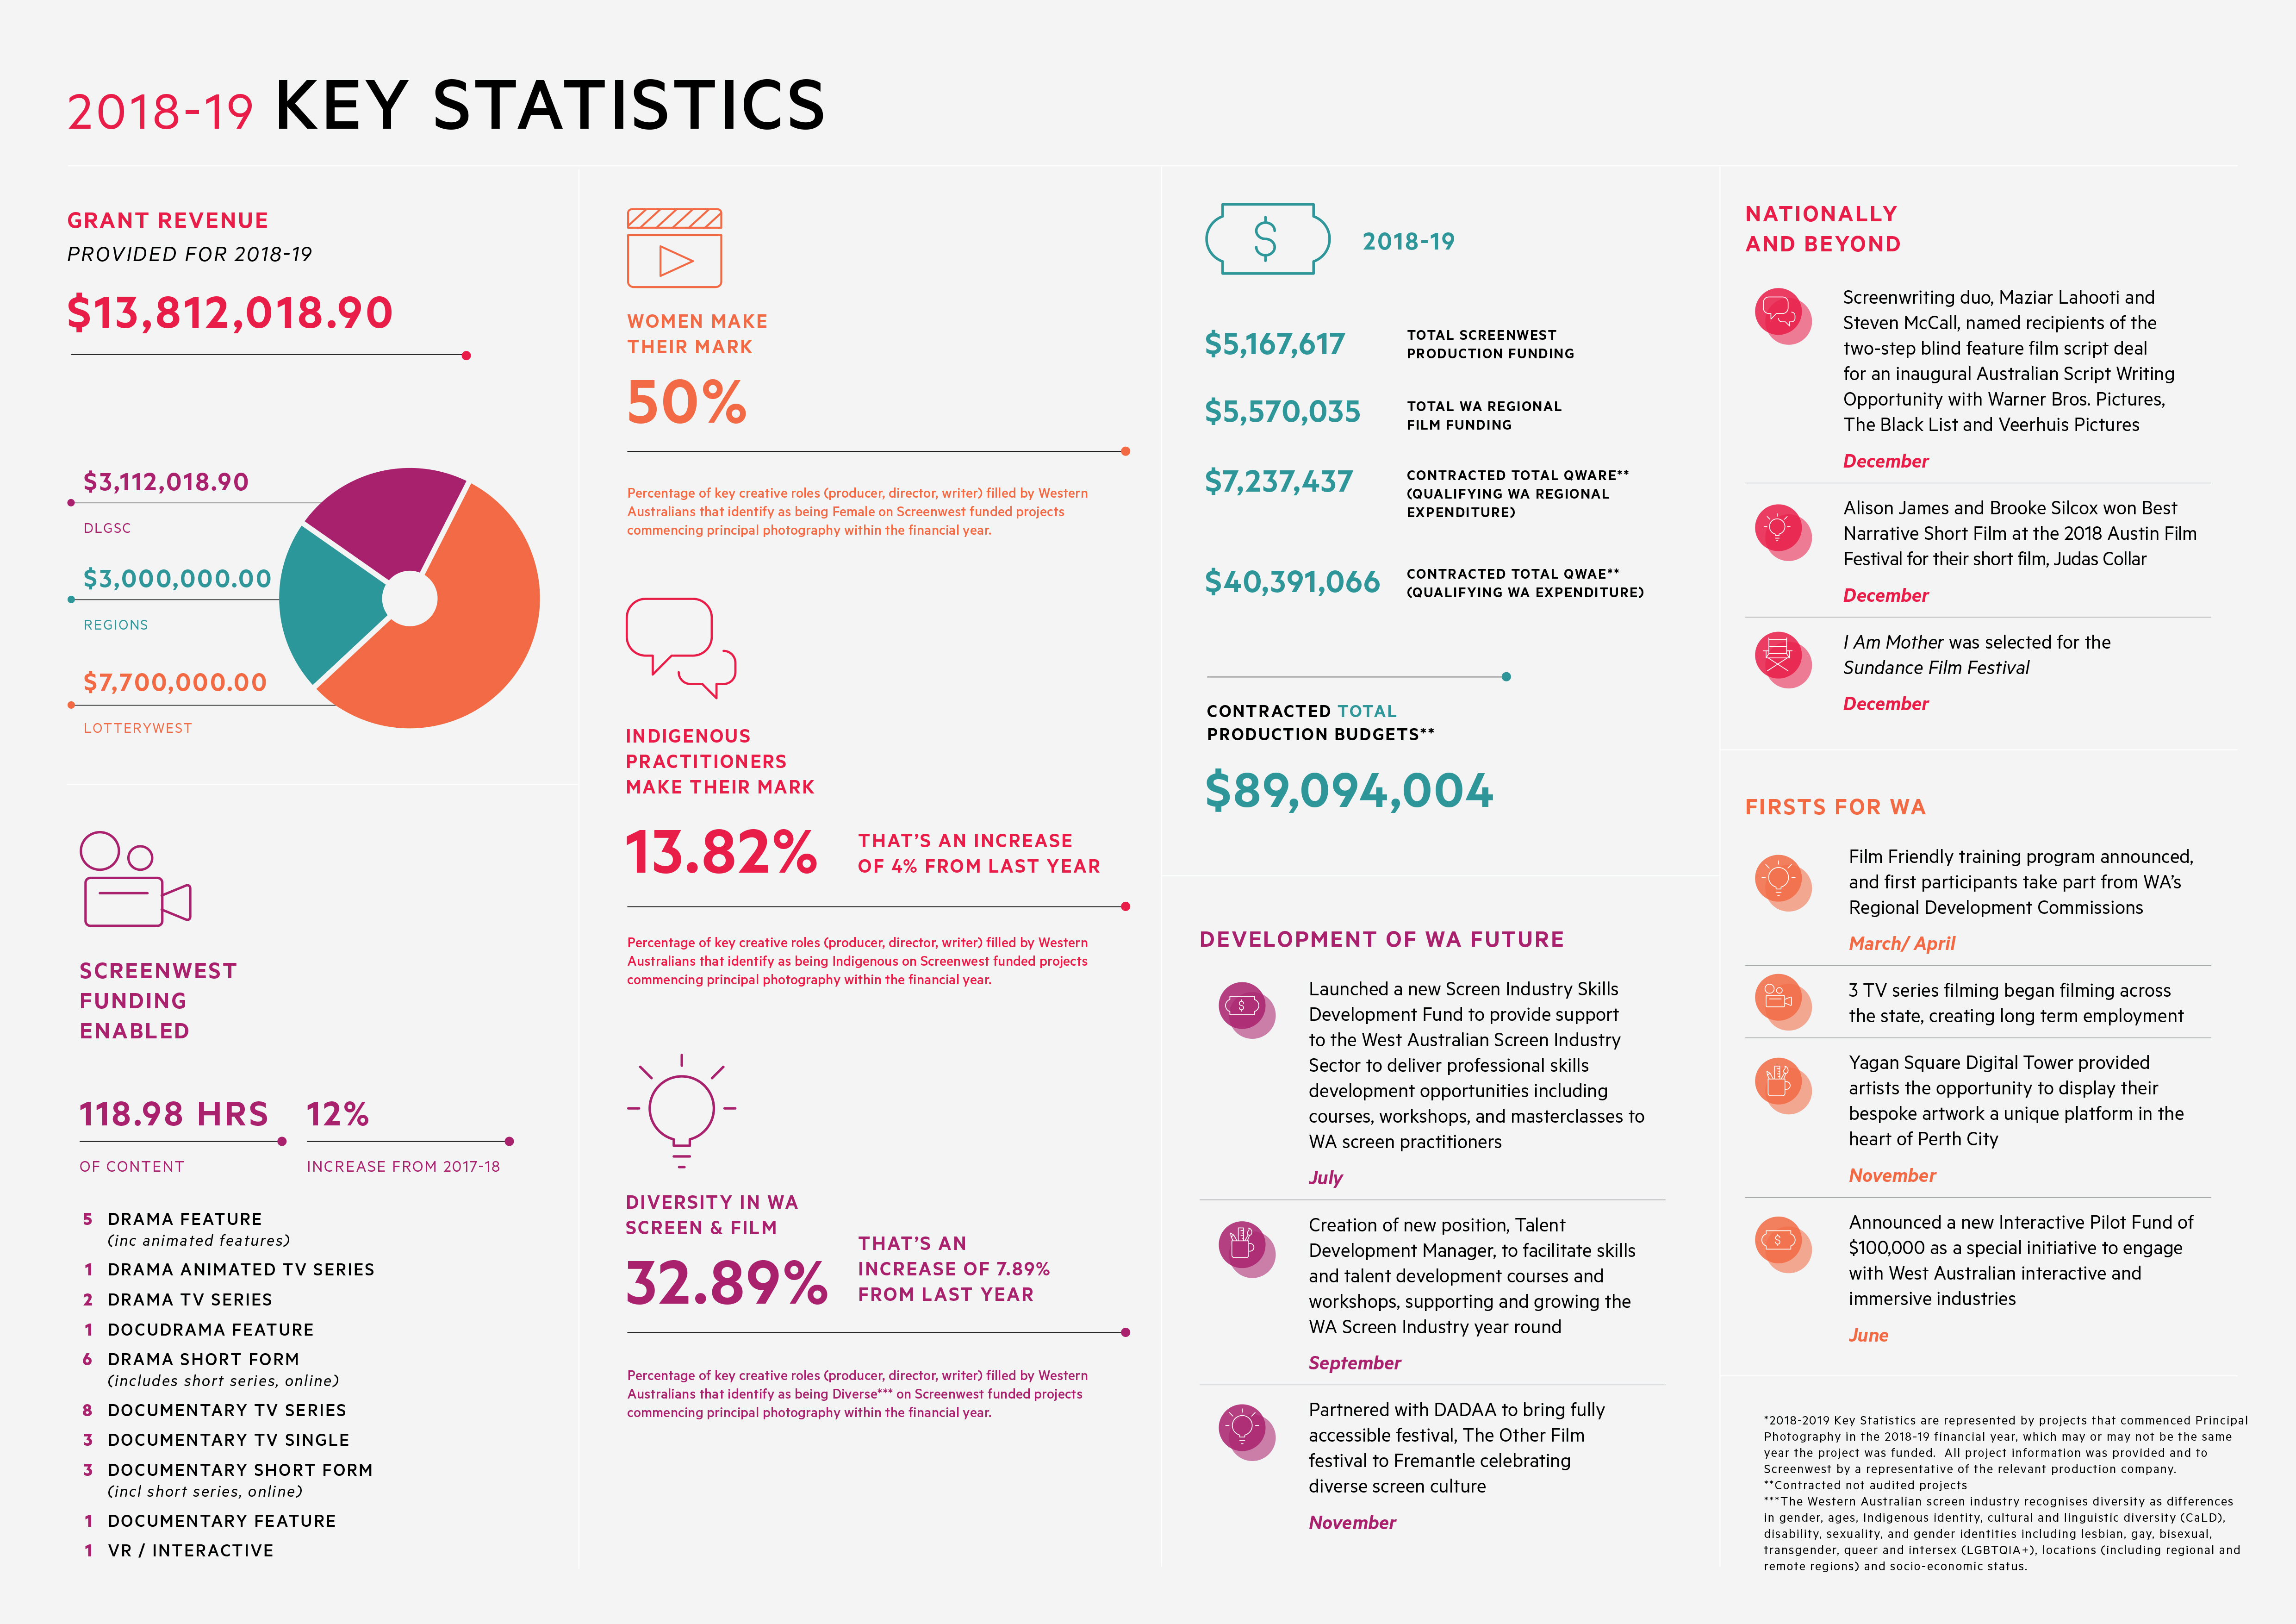 Screenwest Key Stats Infographic 2018-19 (available in annual report)